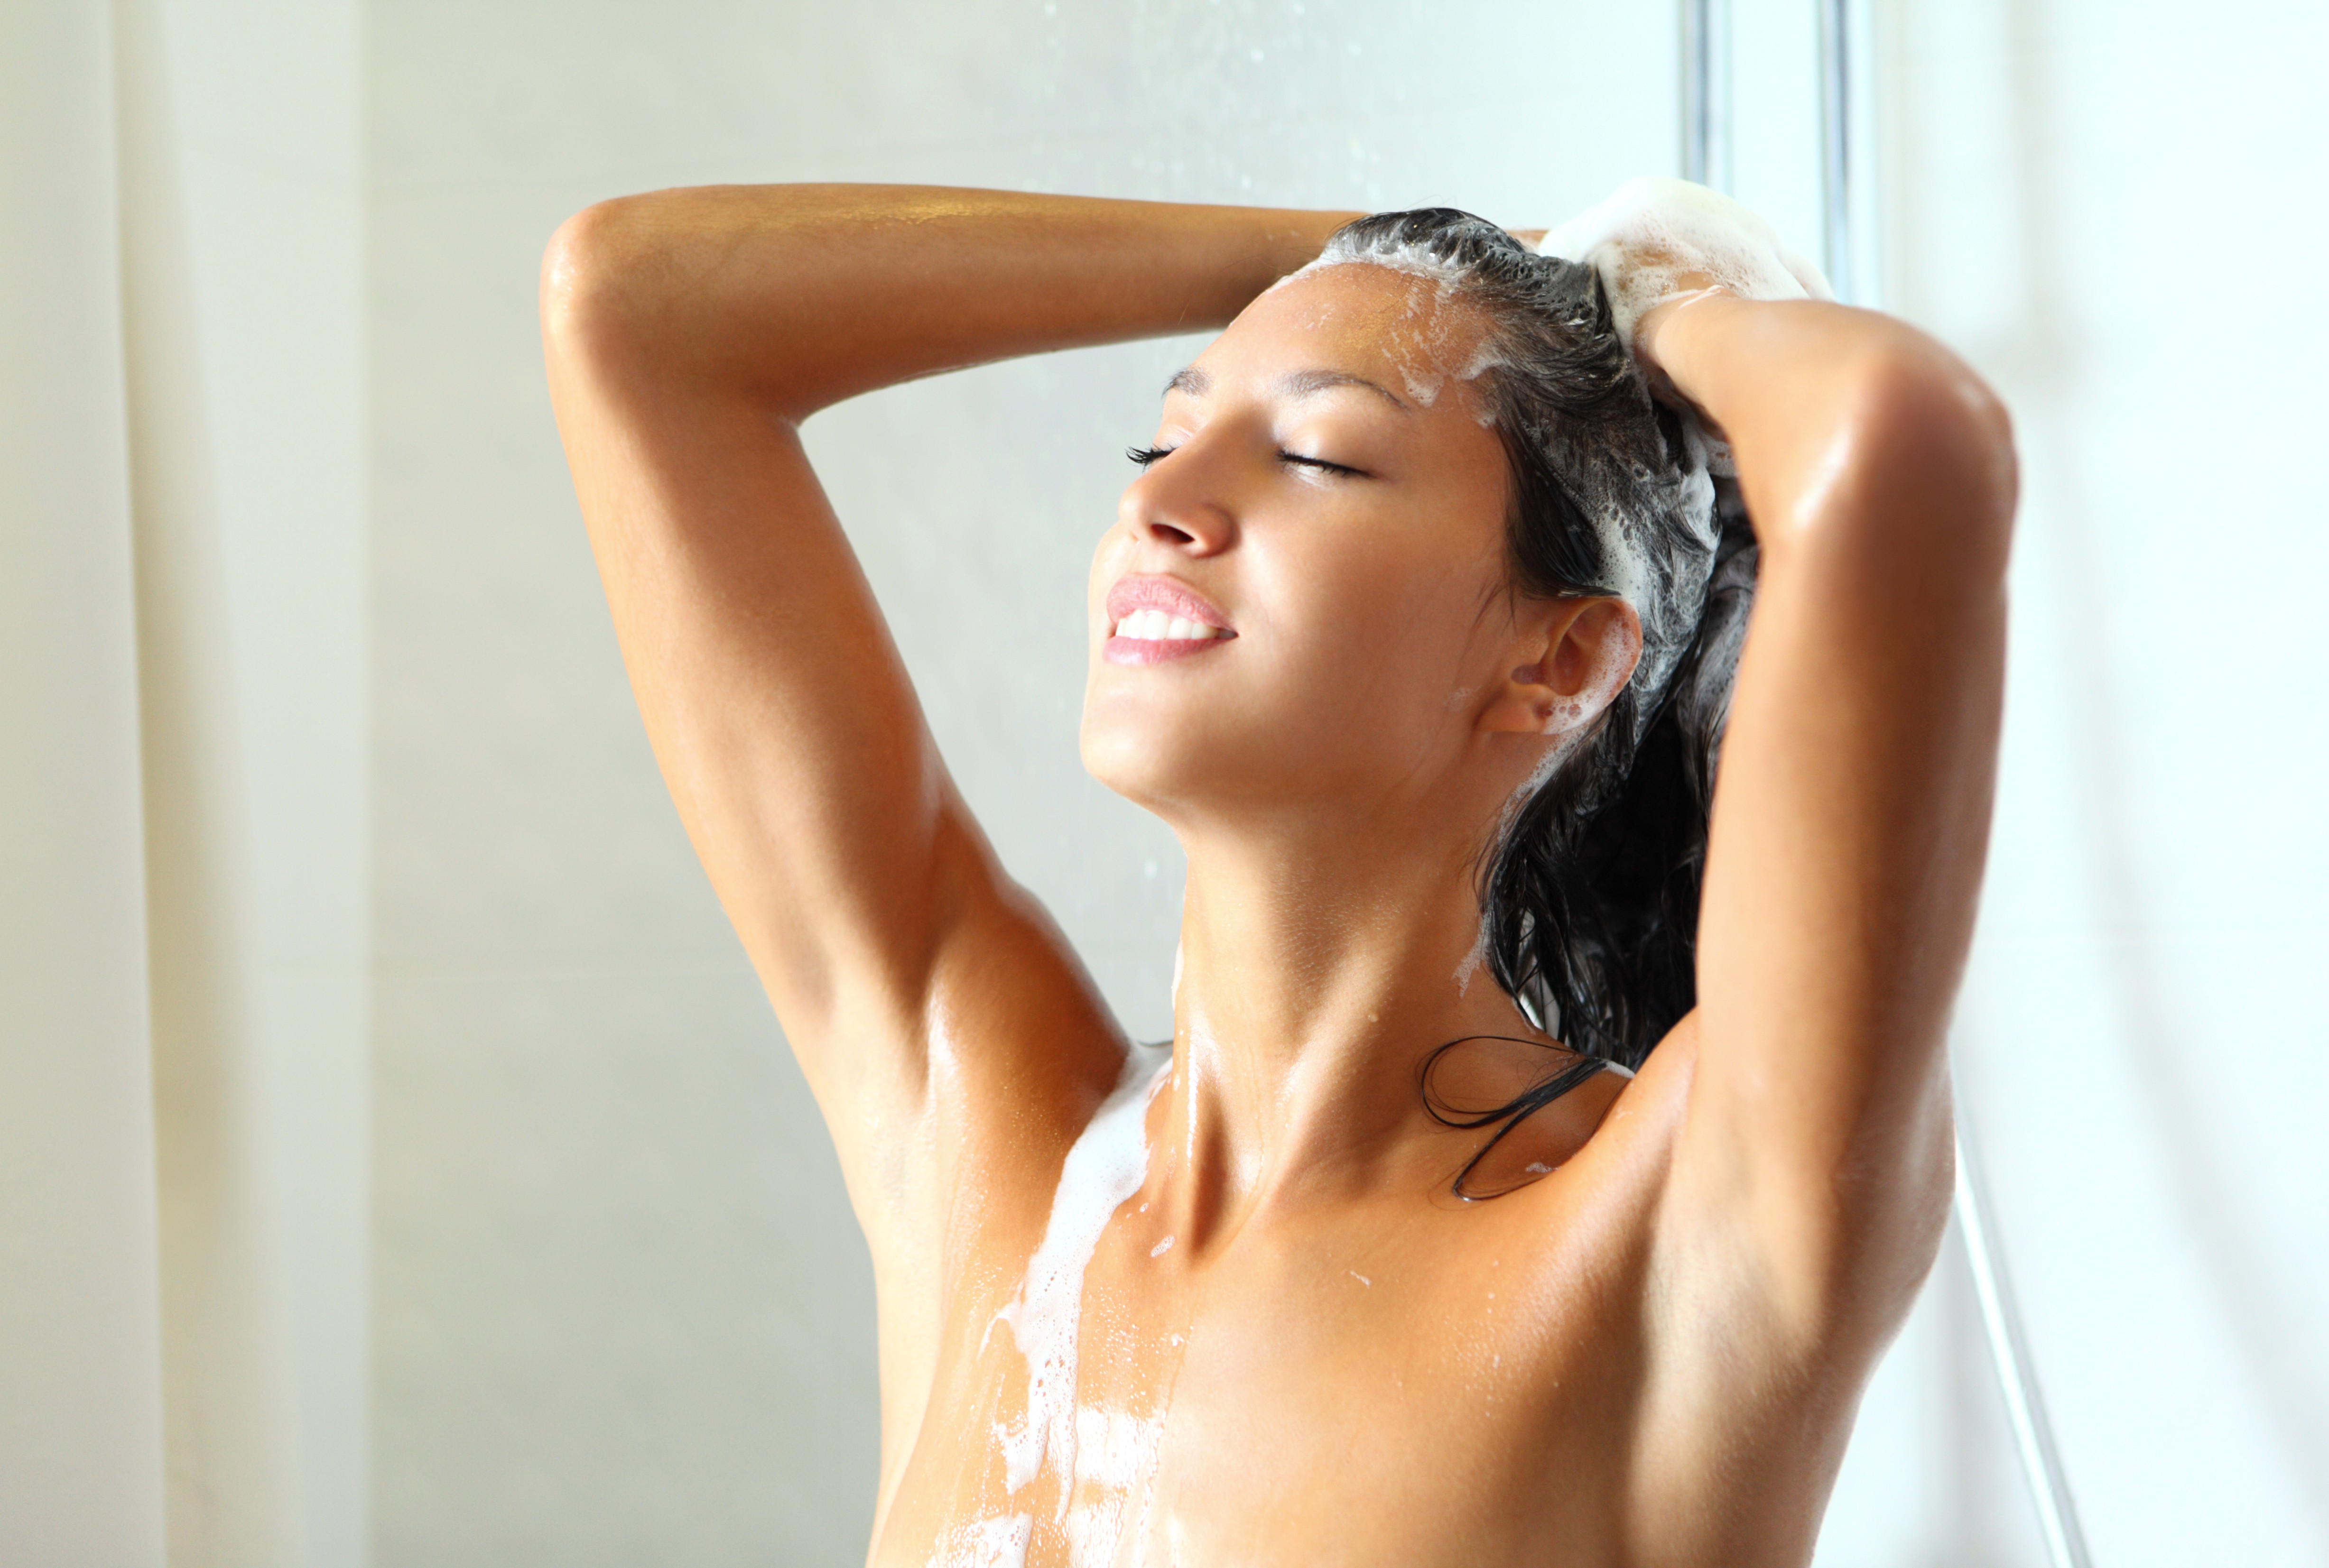 Having a shower instead of a bath is an efficient way to save water